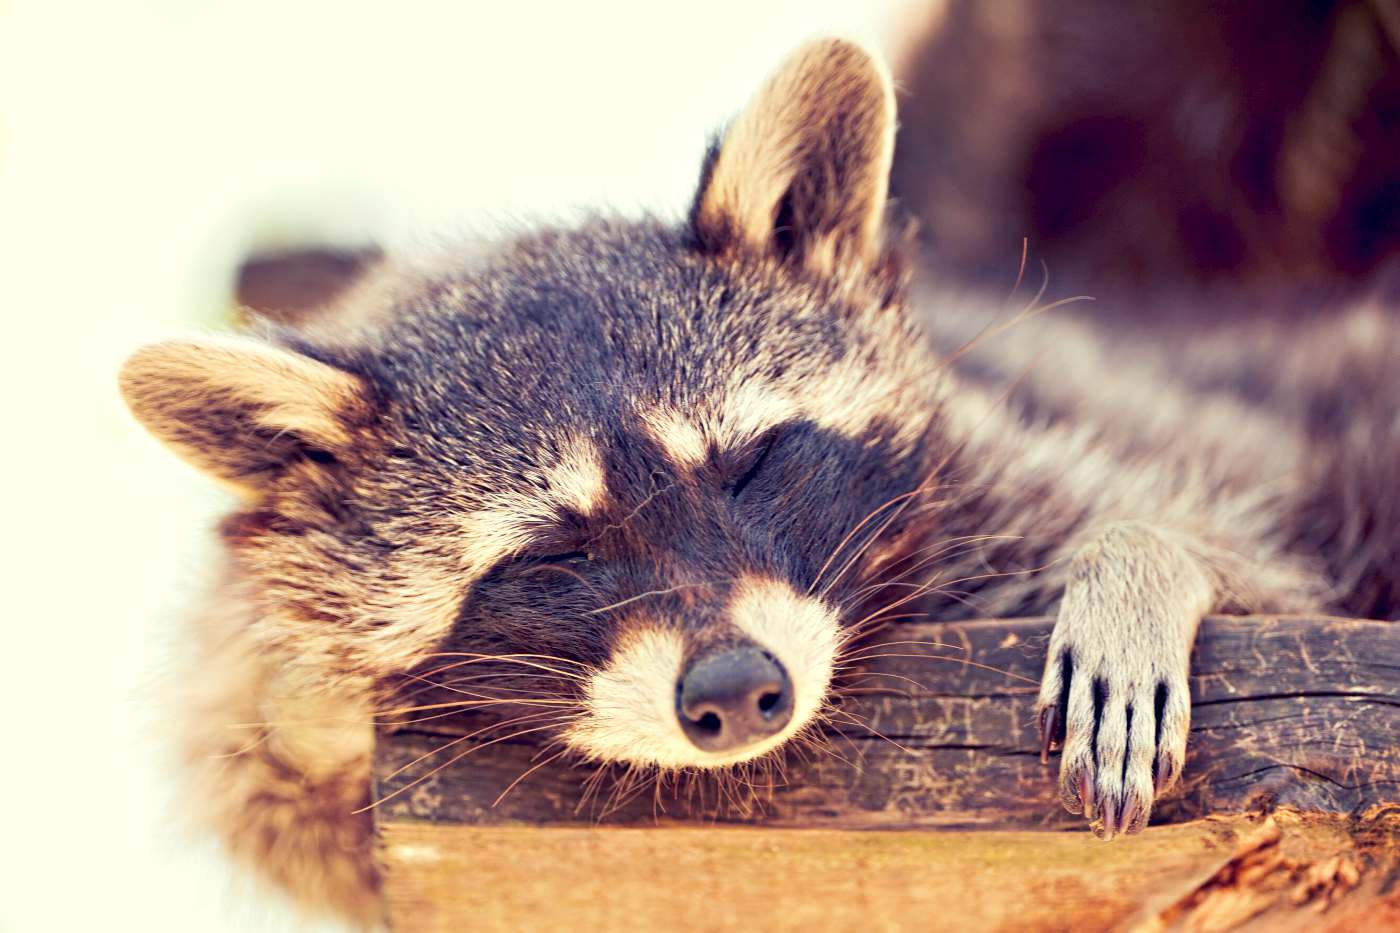 Sleeping racoon doesn't care